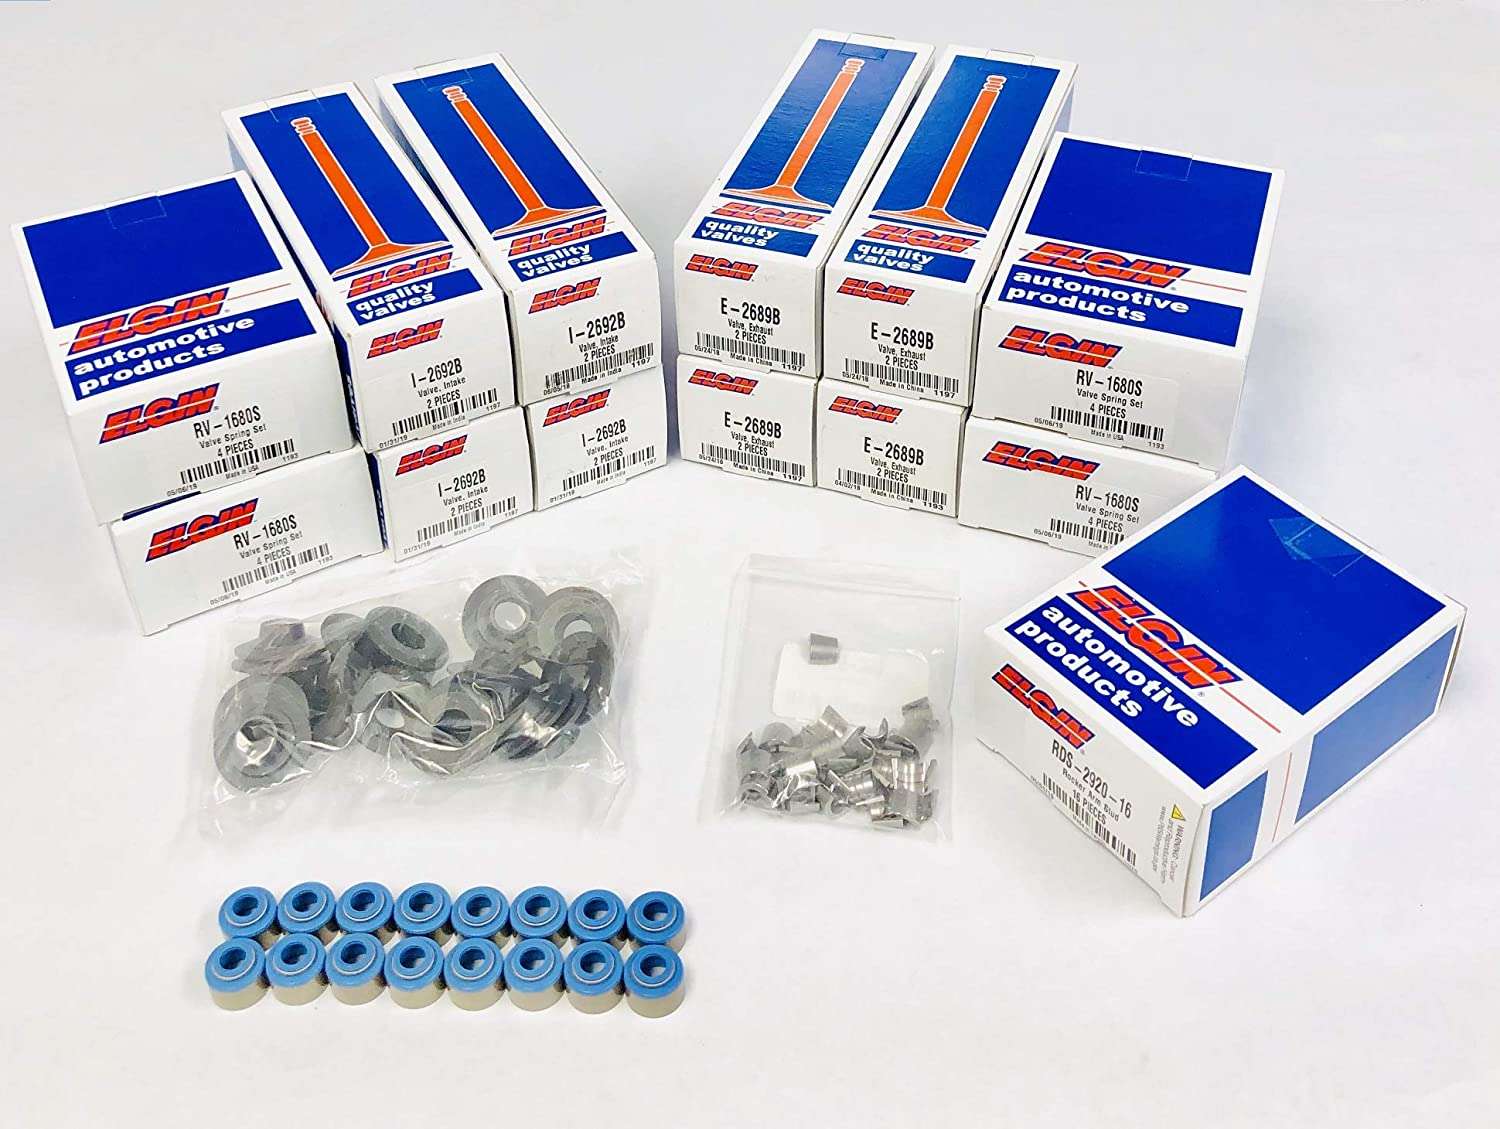 Chevy GMC 350 5.7 5.7L VORTEC Engine VALVE Train Kit Valves+Springs+Retainer+Locks+Studs Stock Replacement